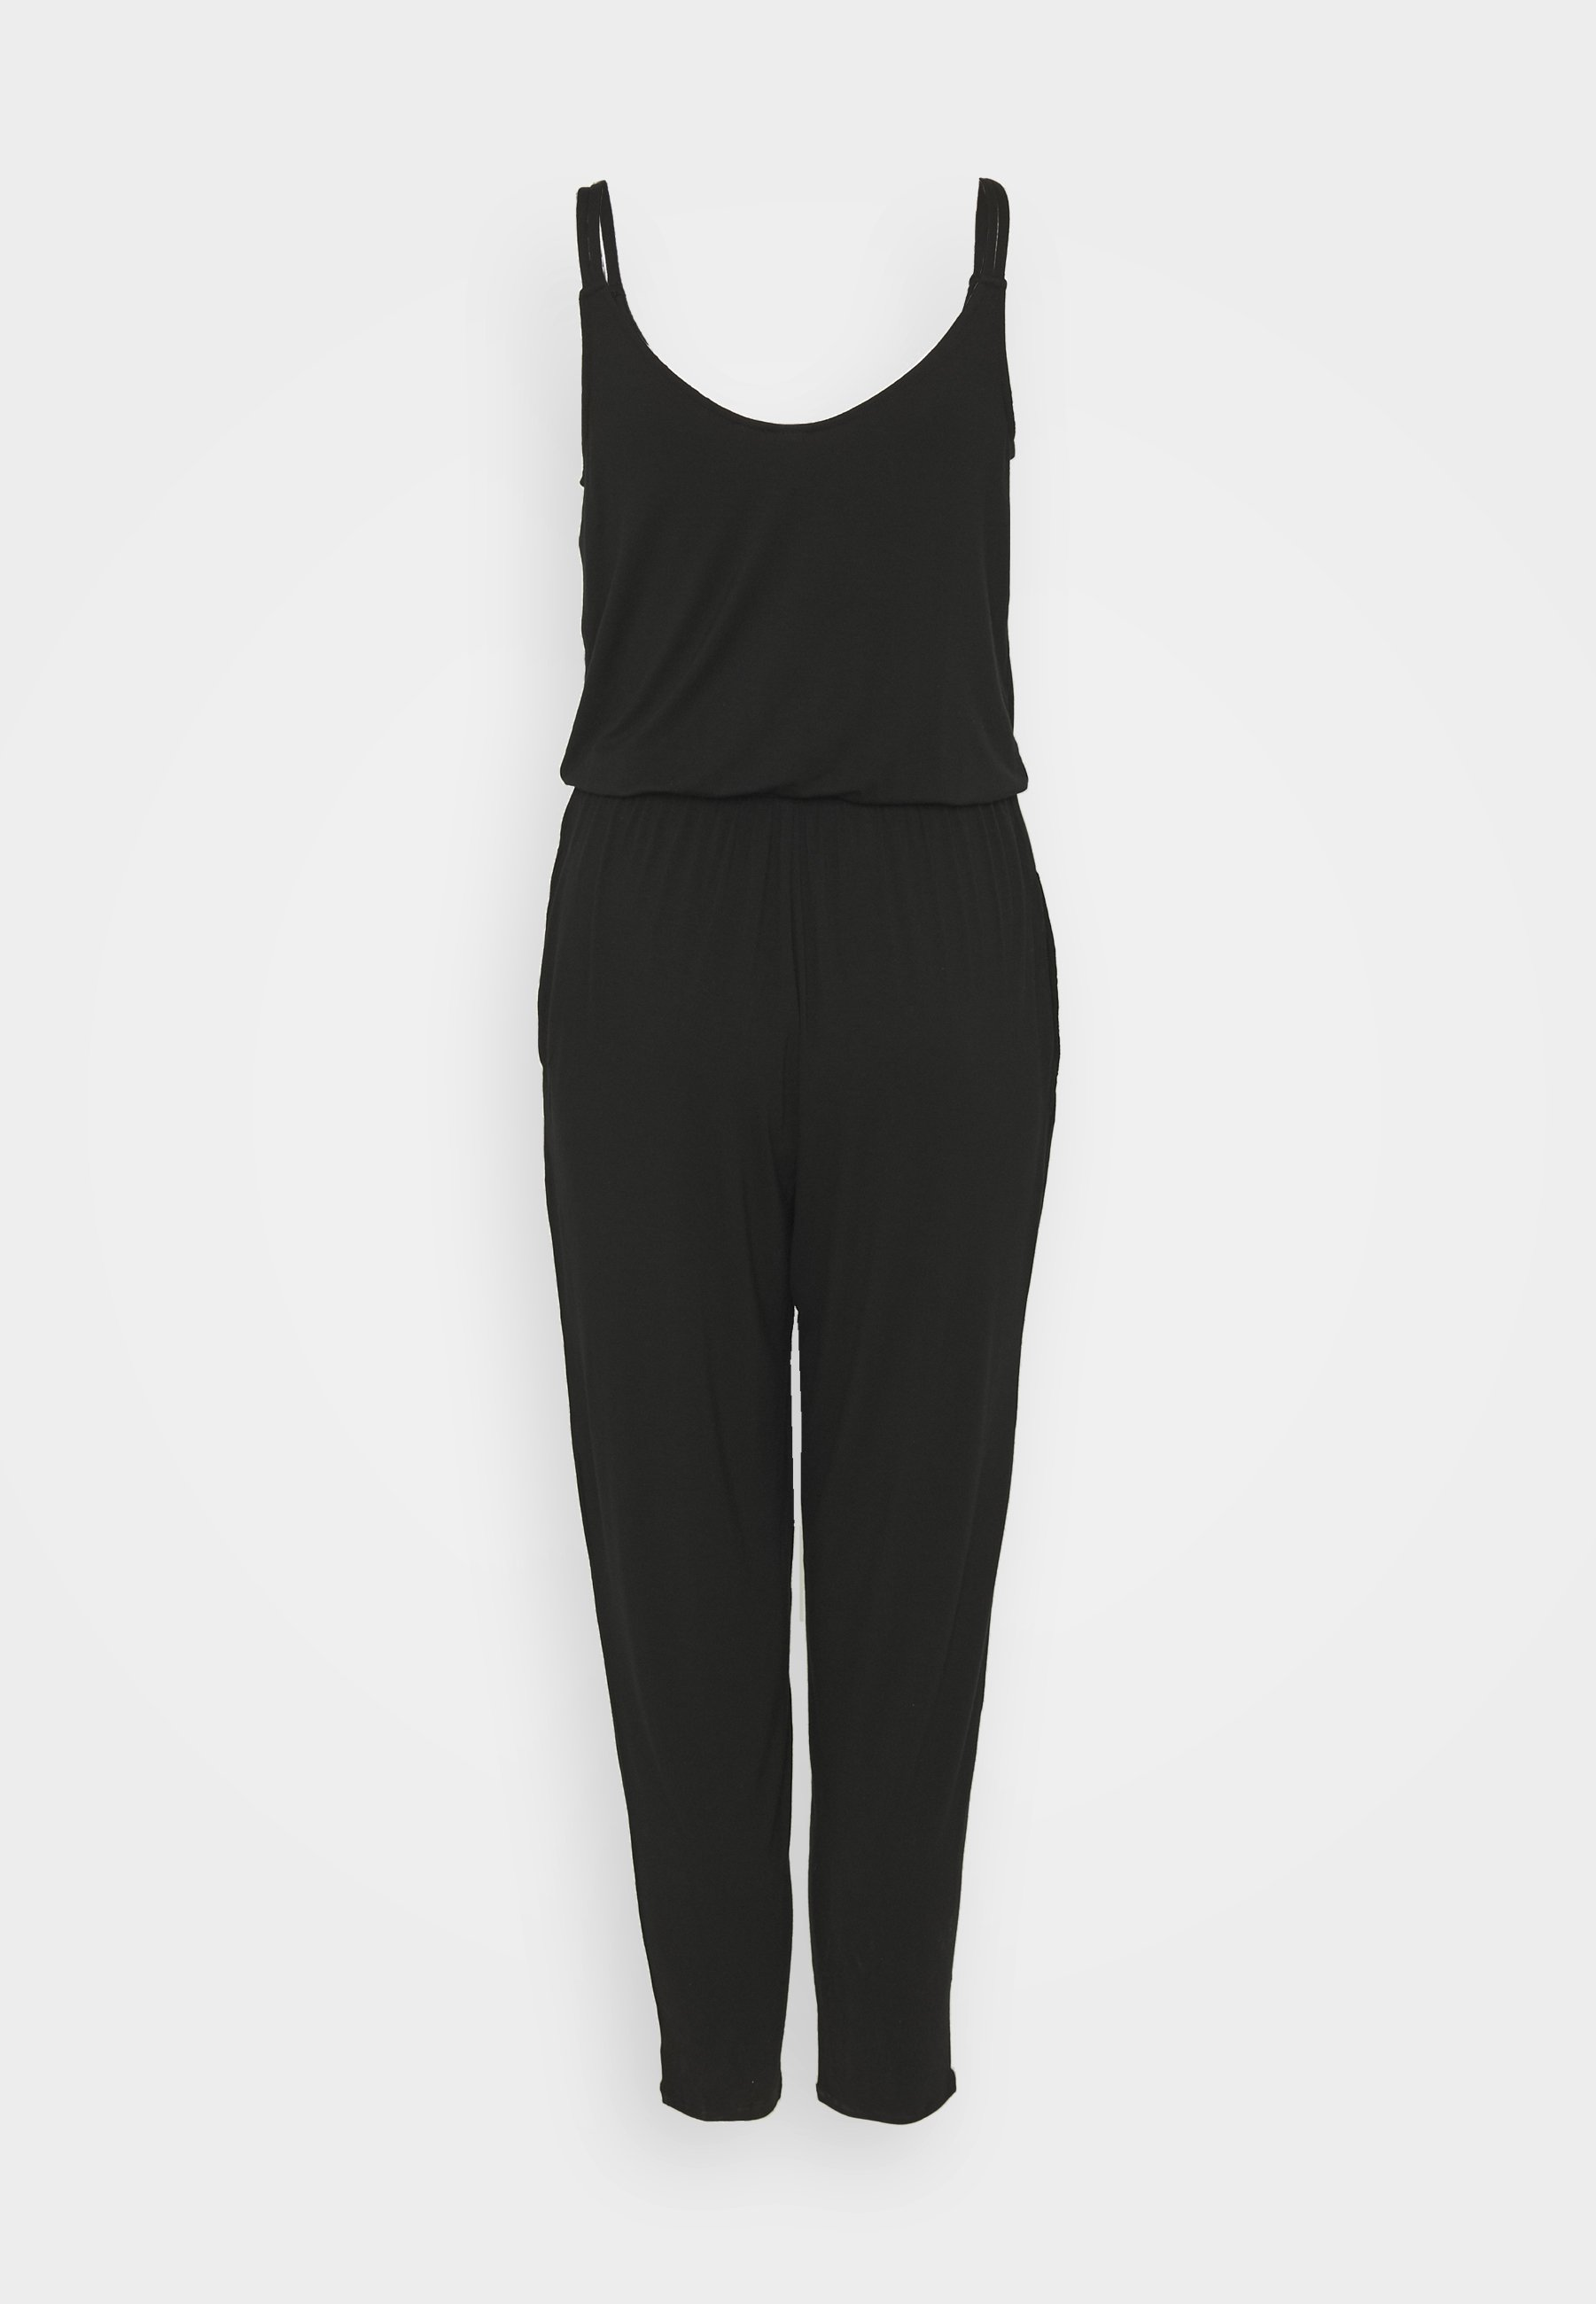 Gap Cami - Jumpsuit True Black Friday